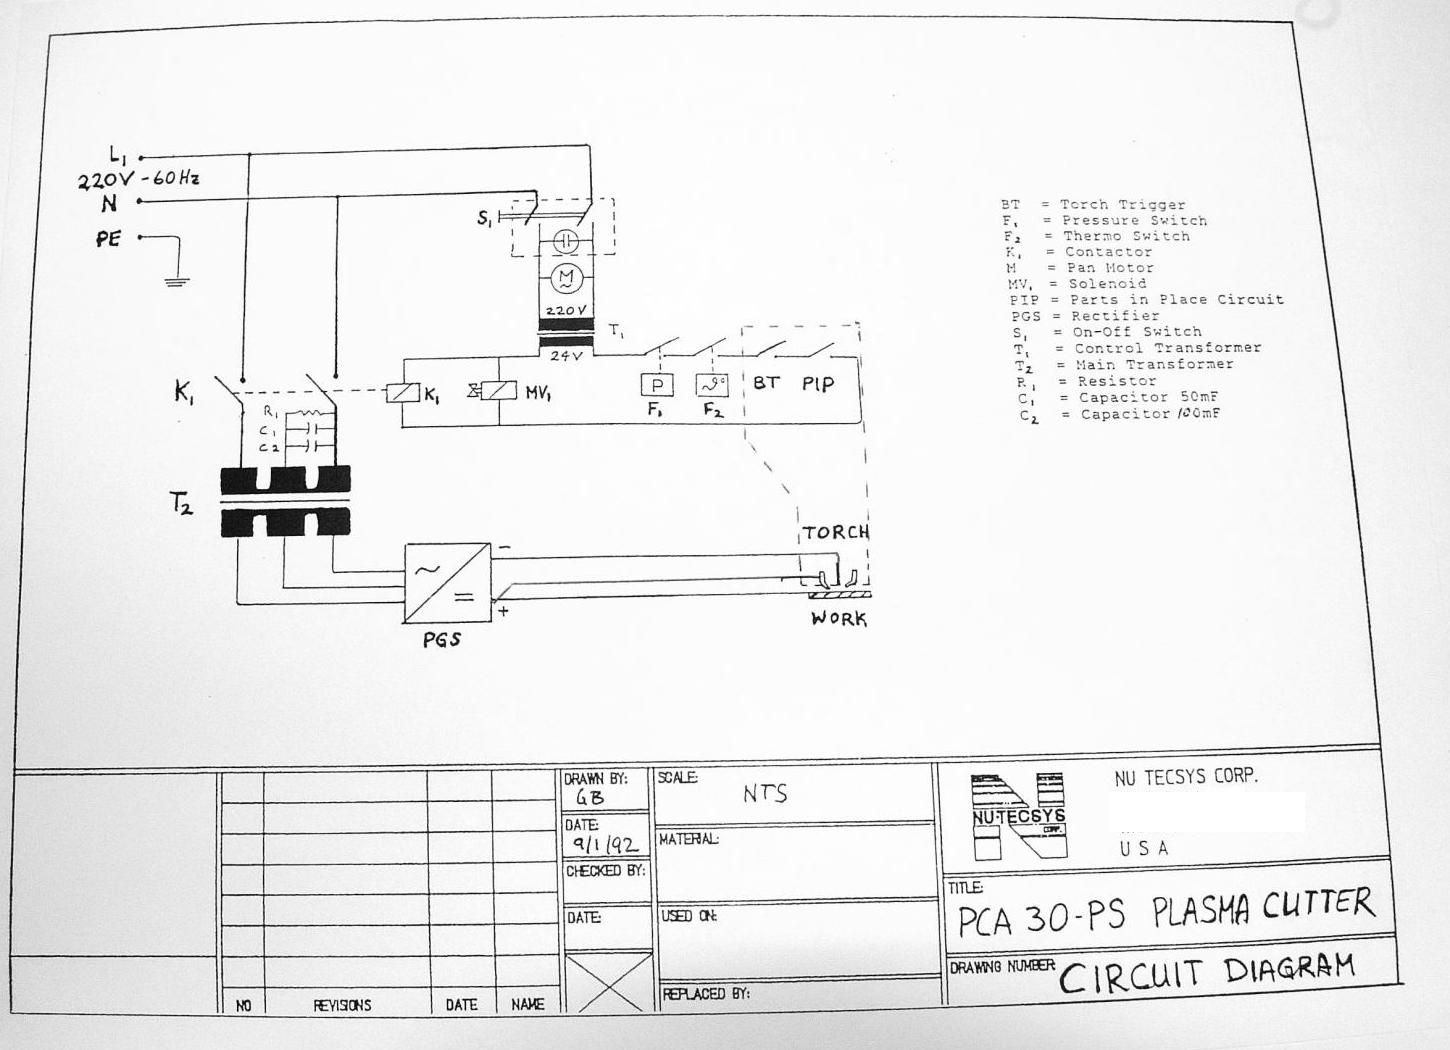 Plasma Cutter Diagram 2 Custom Wiring Cnc Schematic Fan Rh Banyan Palace Com